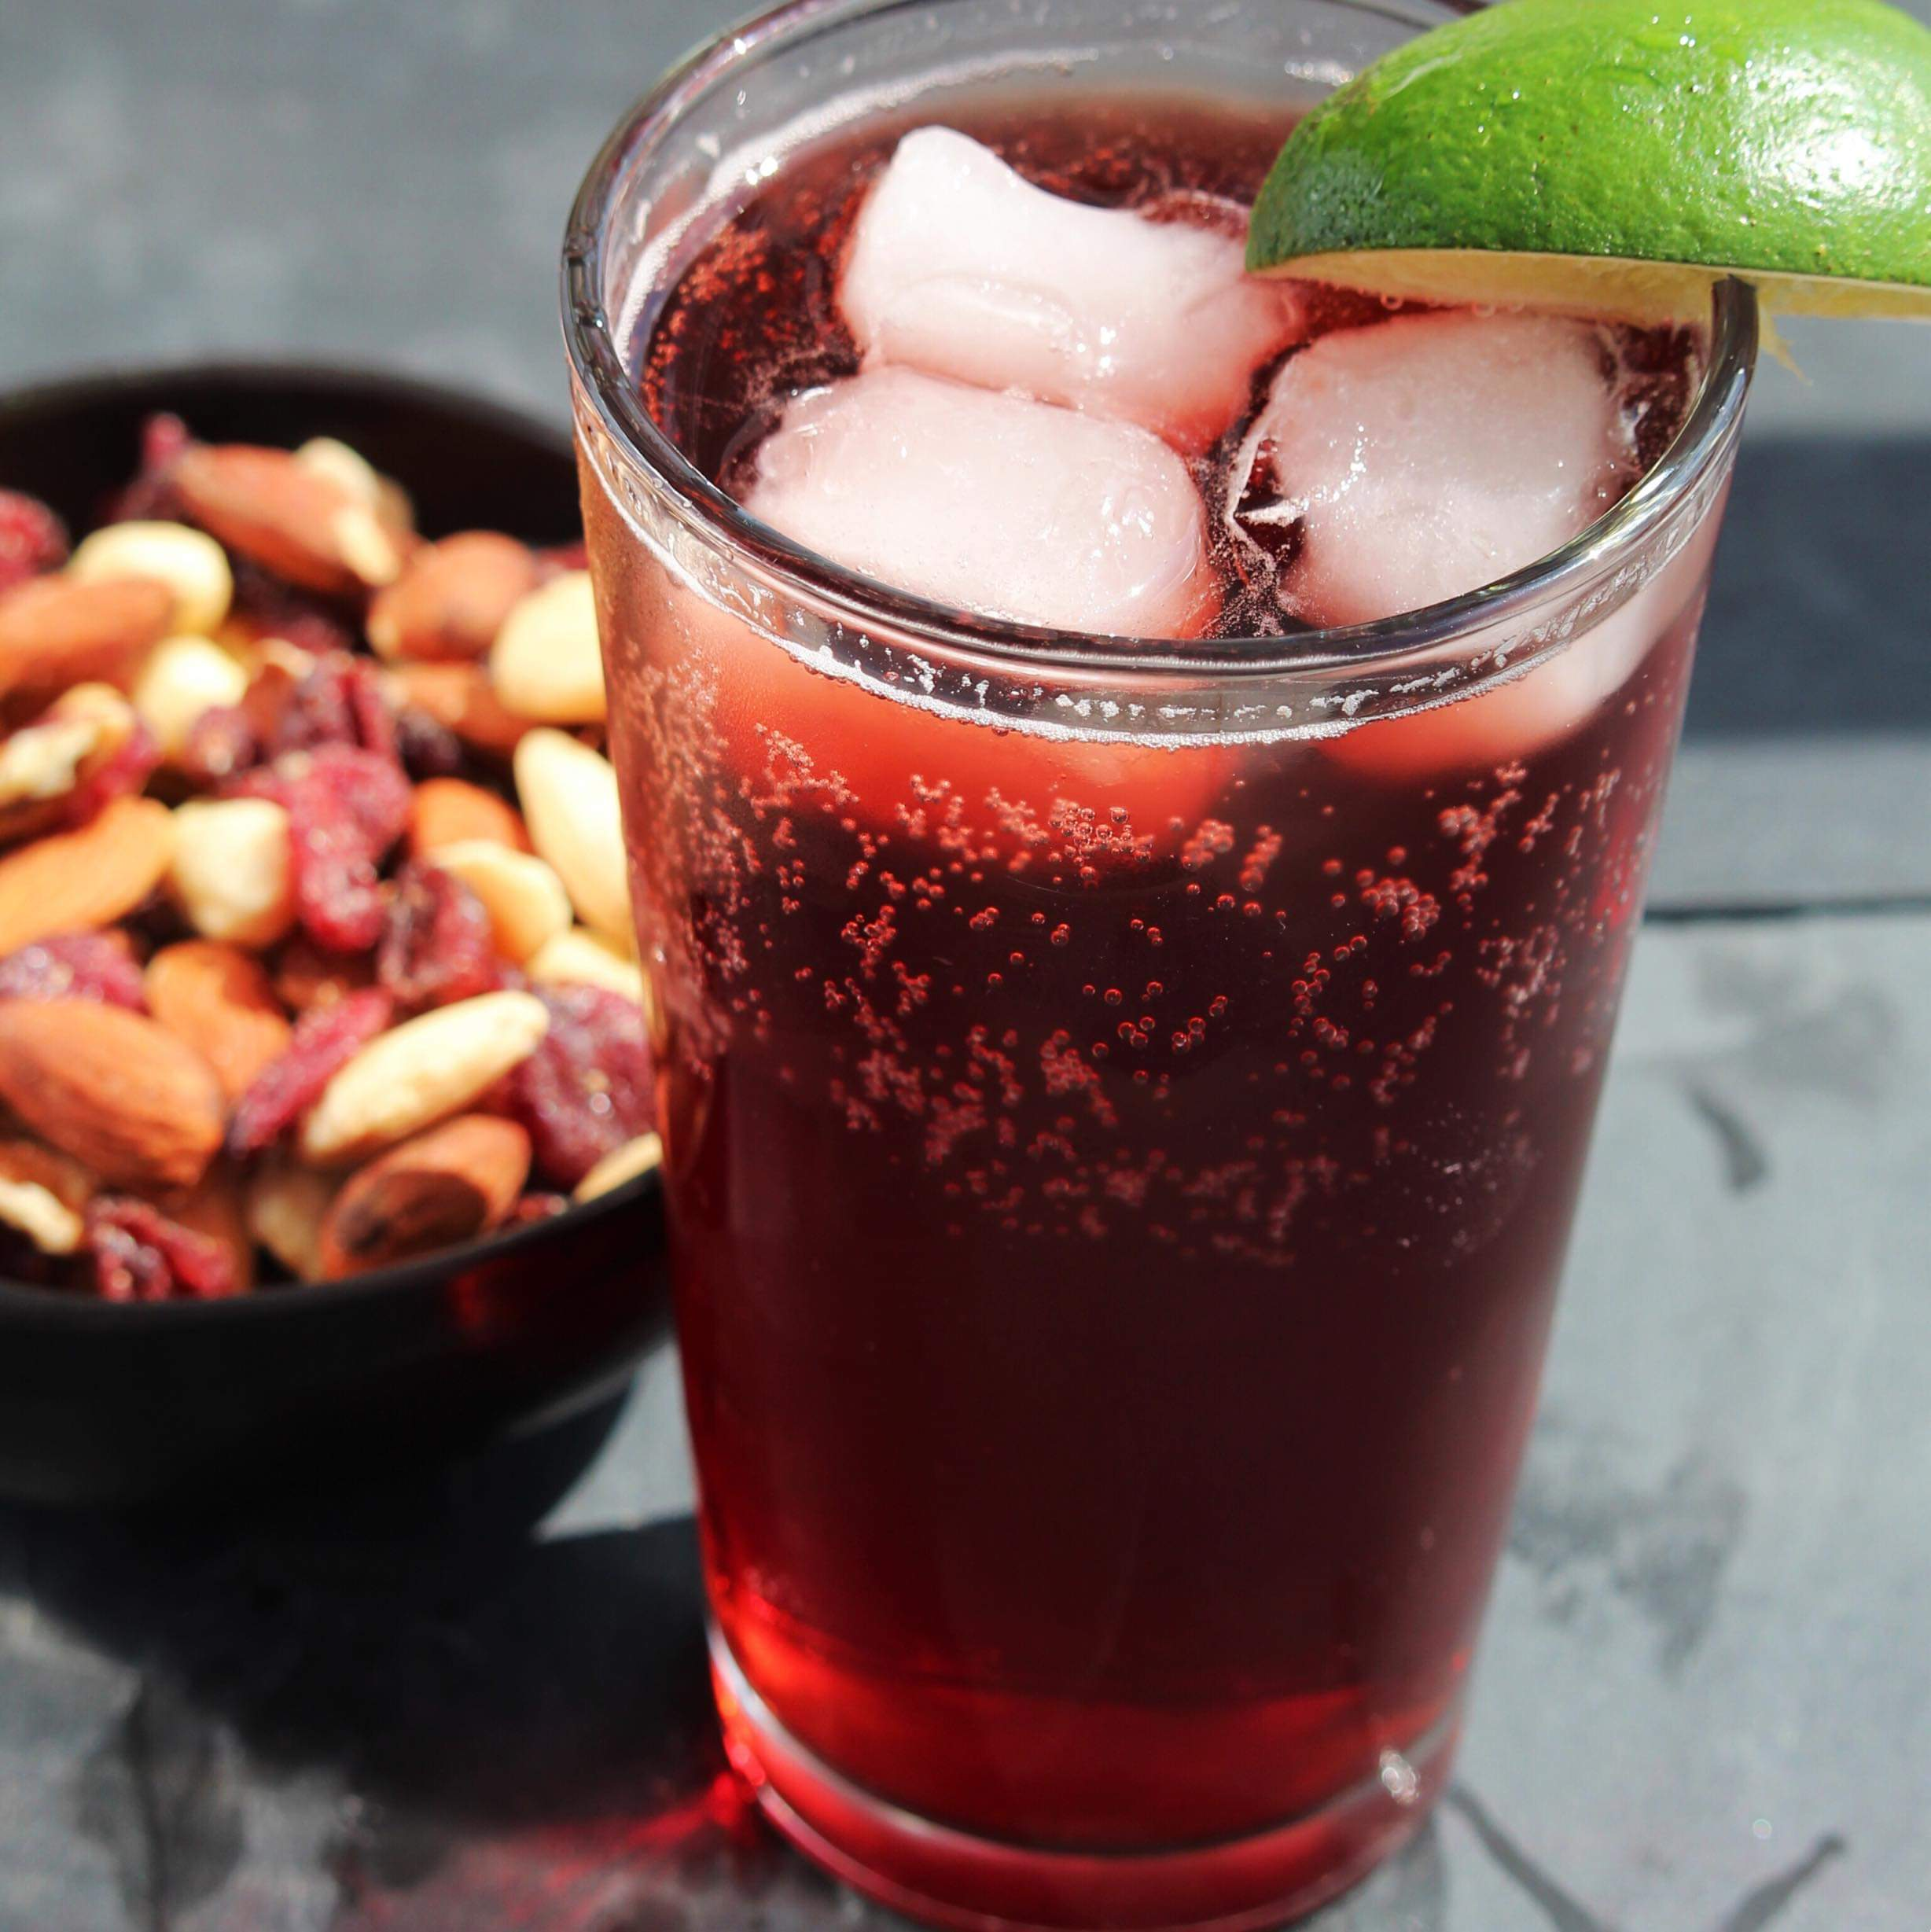 """This hibiscus cooler is a super refreshing drink on a hot summer day,"" says CJ. Recipe reviewer Buckwheat Queen described it as tasting ""like spiced mulled wine. It was a lovely change as an aperitivo today."""